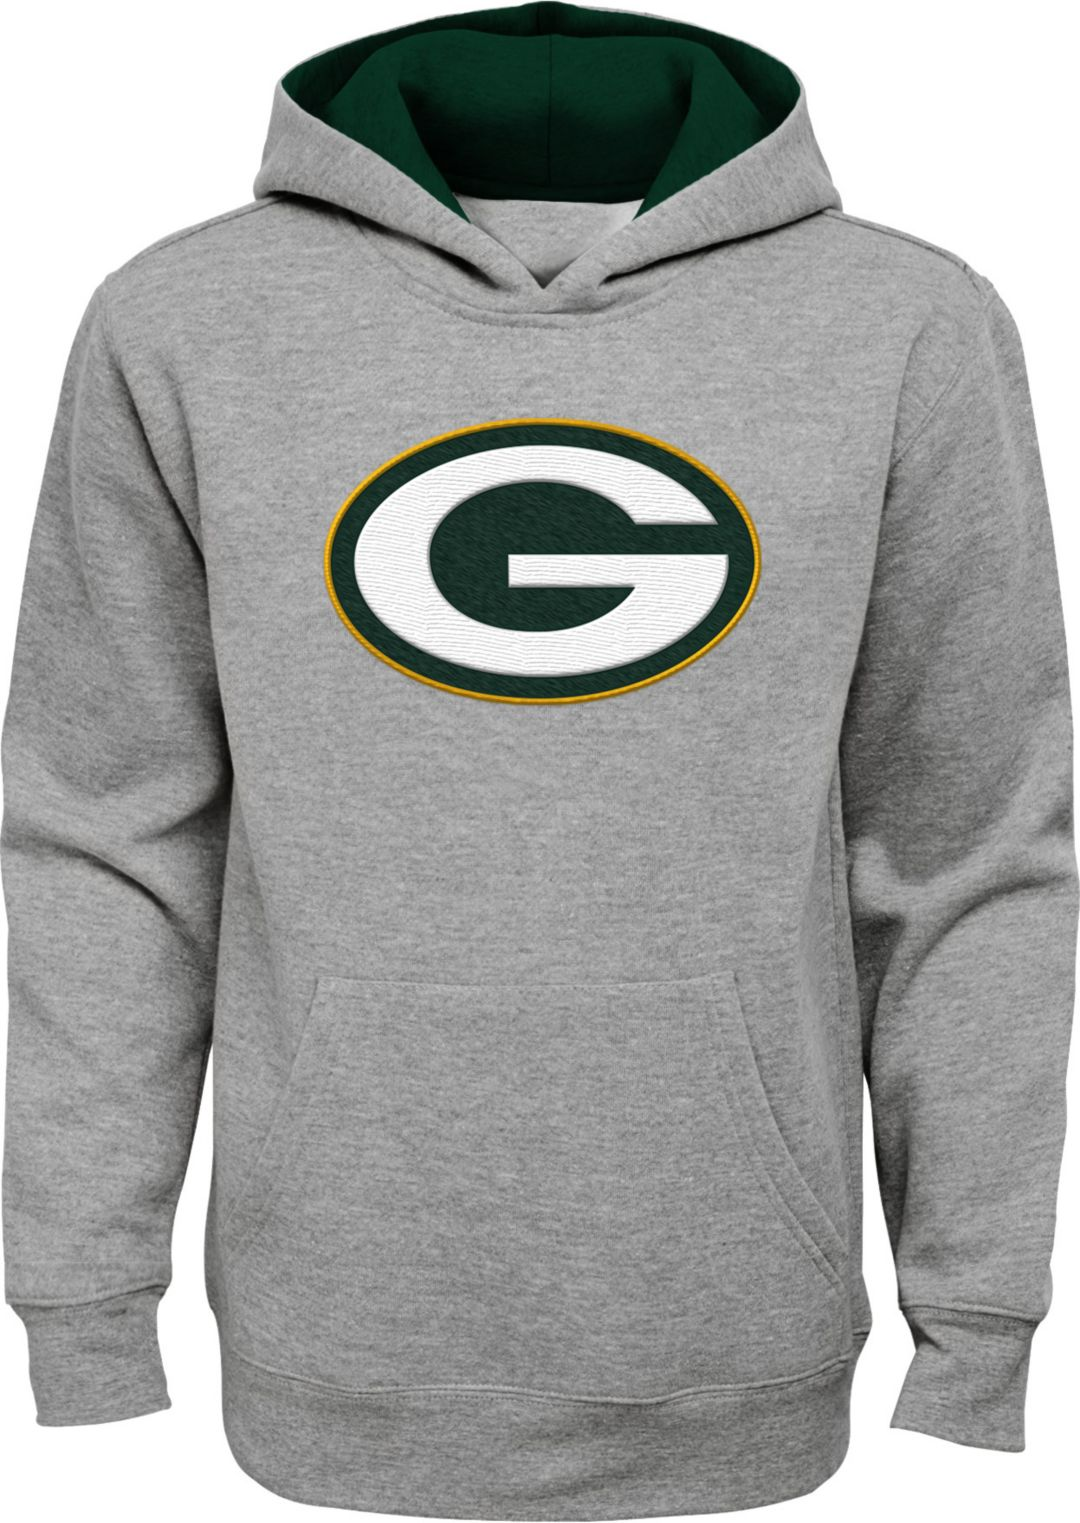 3a654c4b NFL Team Apparel Youth Green Bay Packers Prime Grey Pullover Hoodie